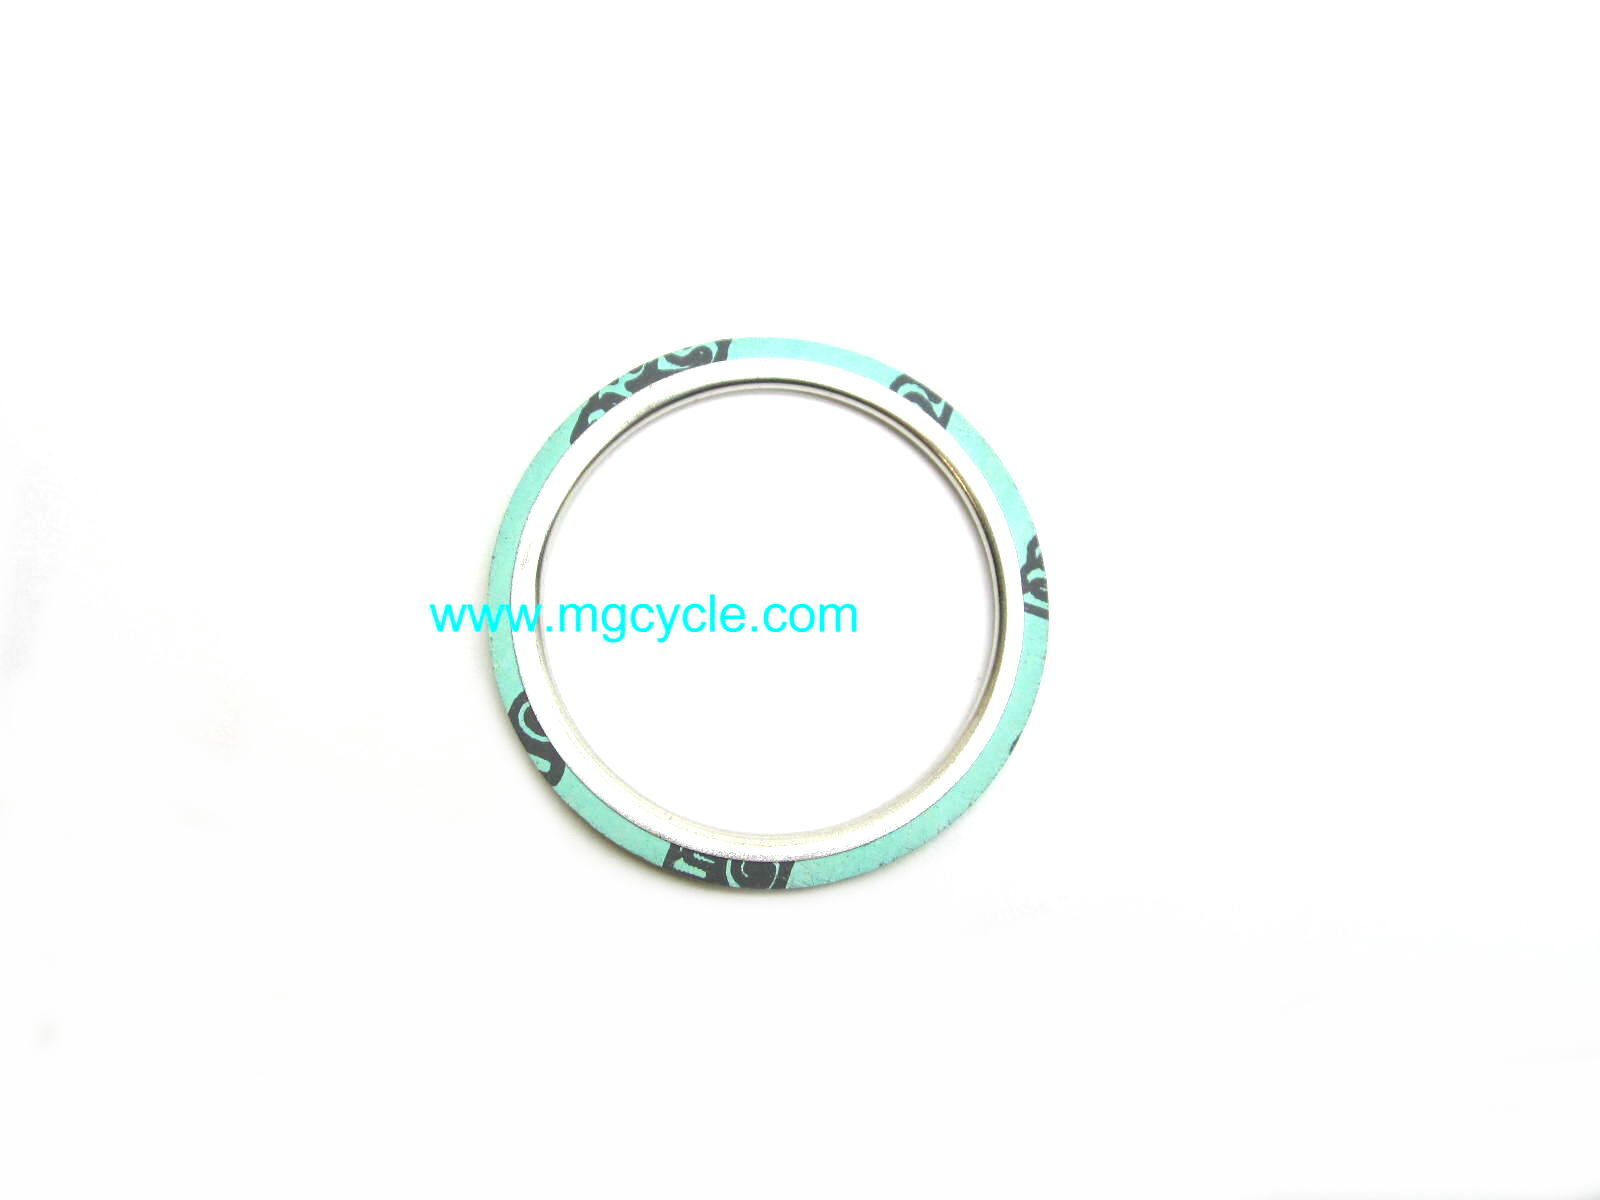 Exhaust gasket, Griso 8V Stelvio/NTX Cal1400 Audace 976376